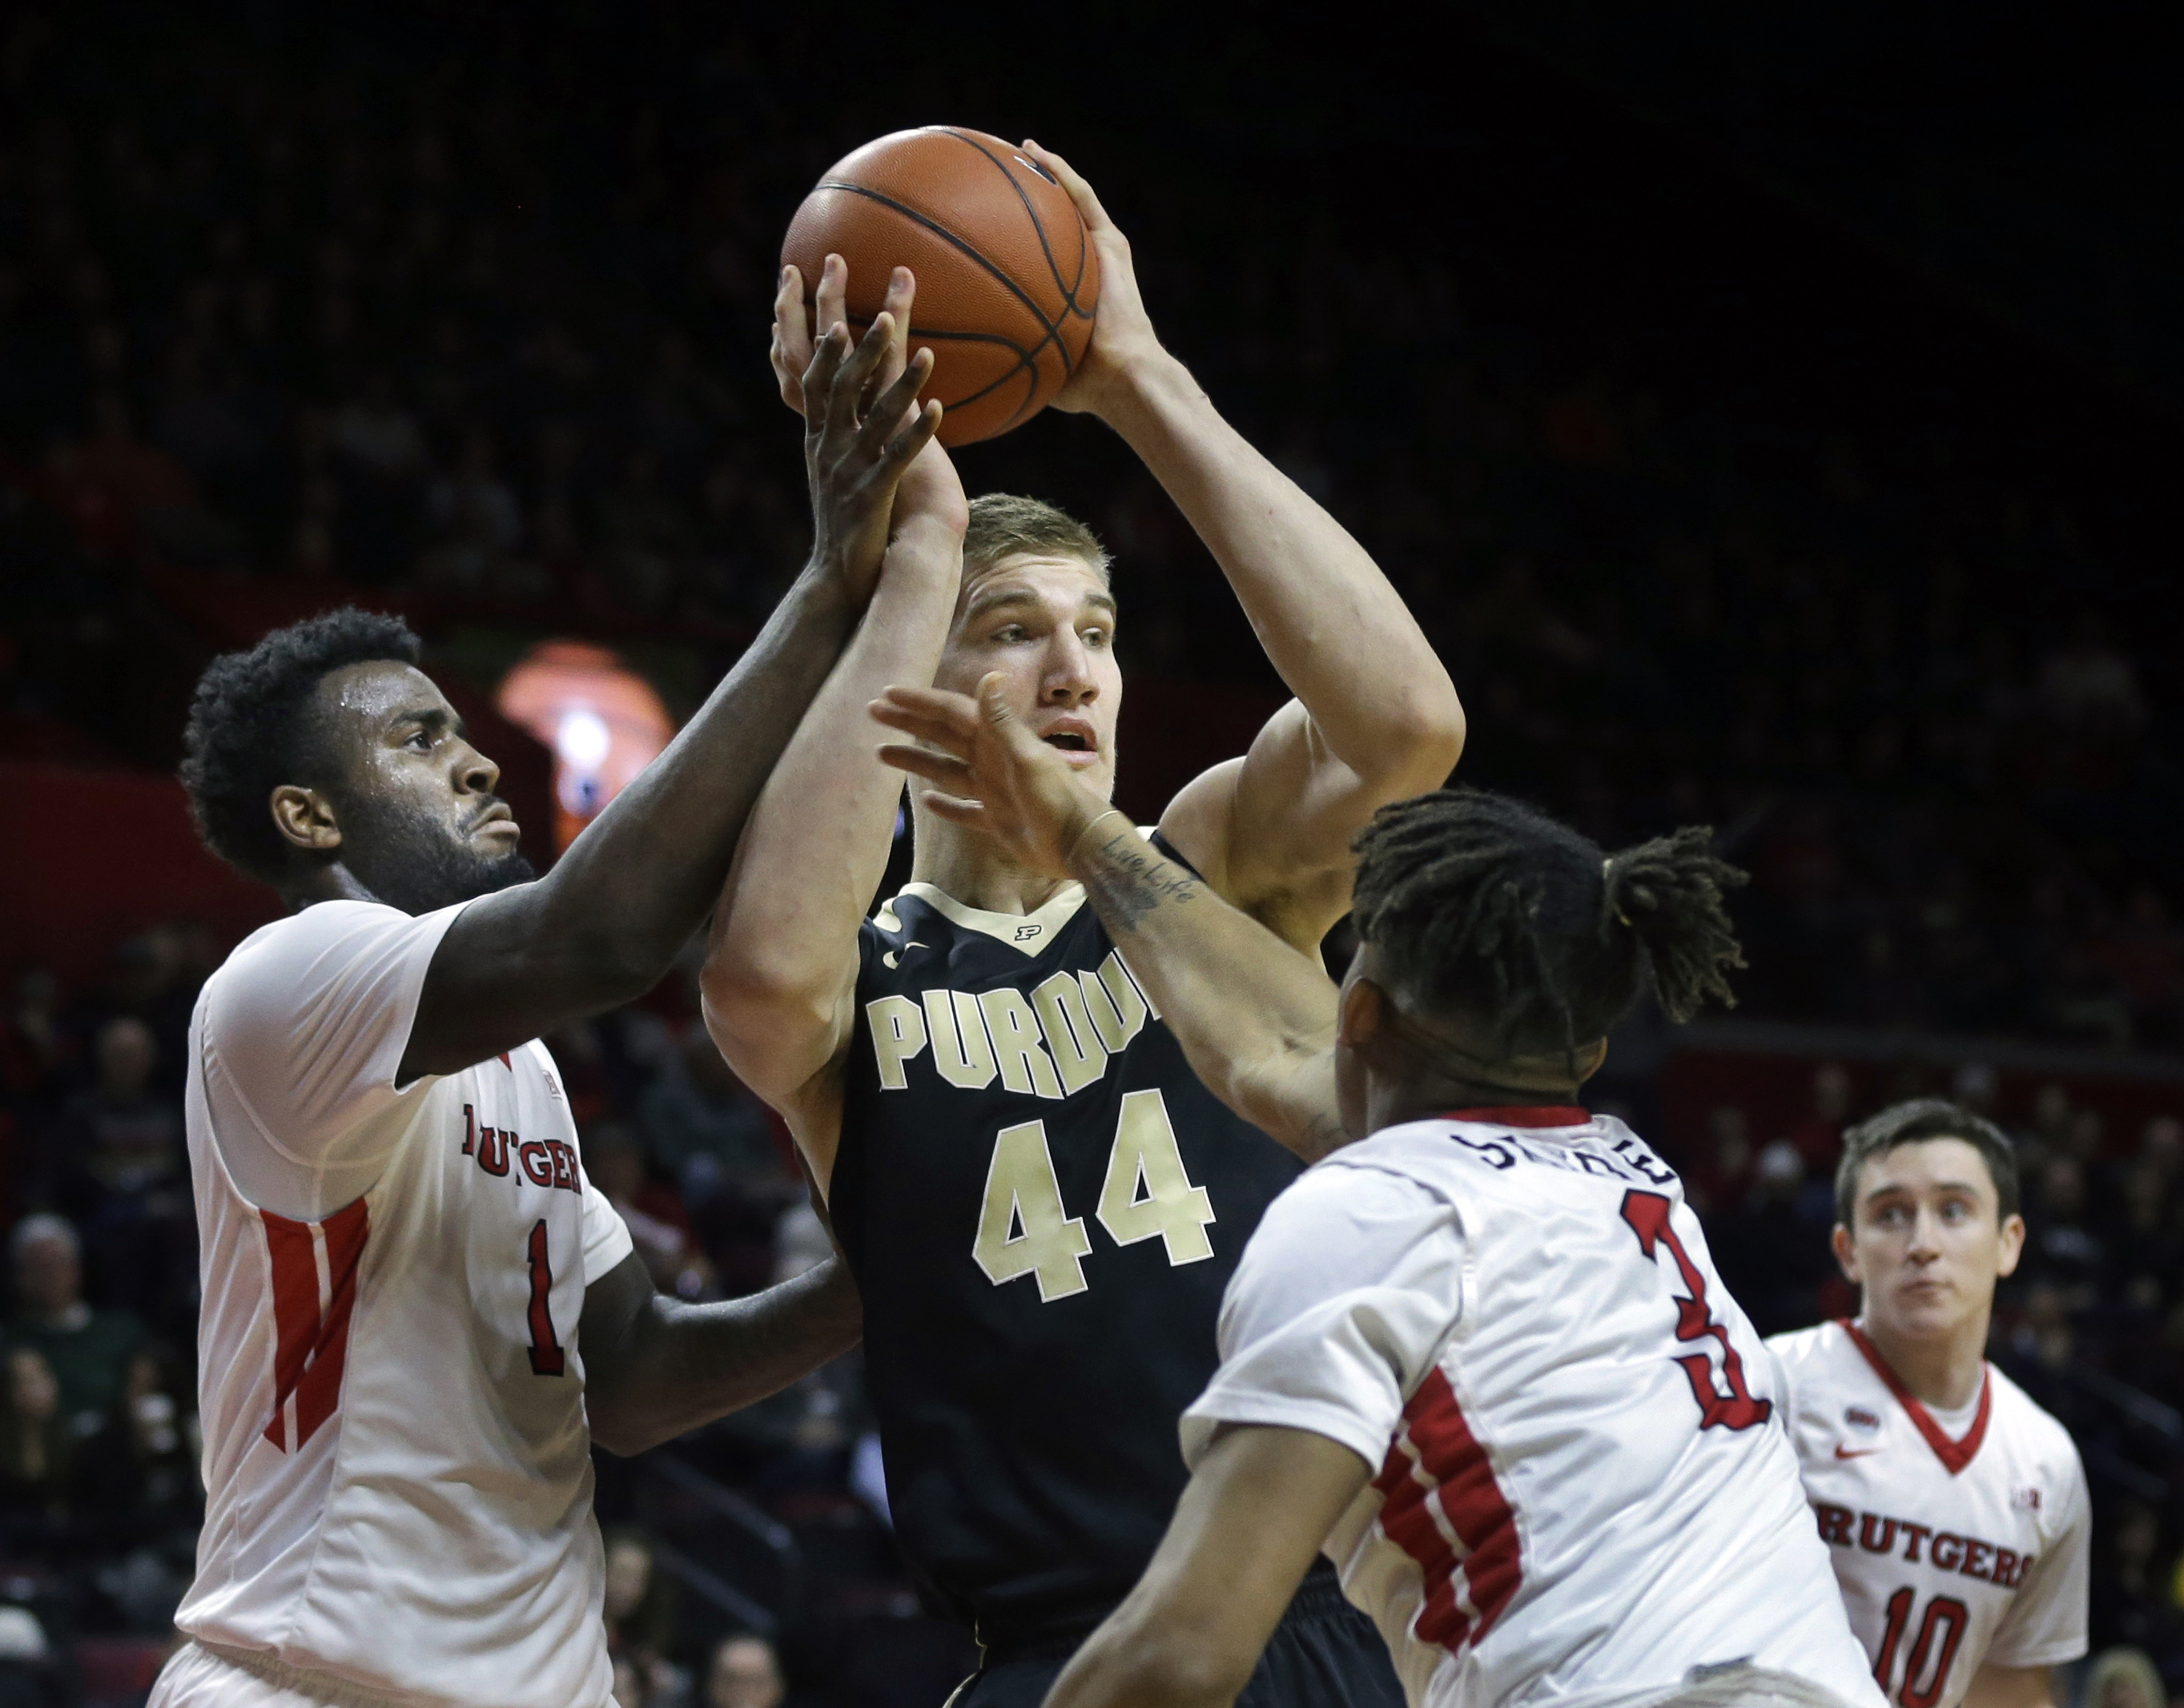 Purdue center Isaac Haas (44) looks to make a pass as he is defended by Rutgers forward D.J. Foreman (1) an guard Corey Sanders (3) during the first half of an NCAA college basketball game, Monday, Jan. 18, 2016, in Piscataway, N.J. (AP Photo/Mel Evans)